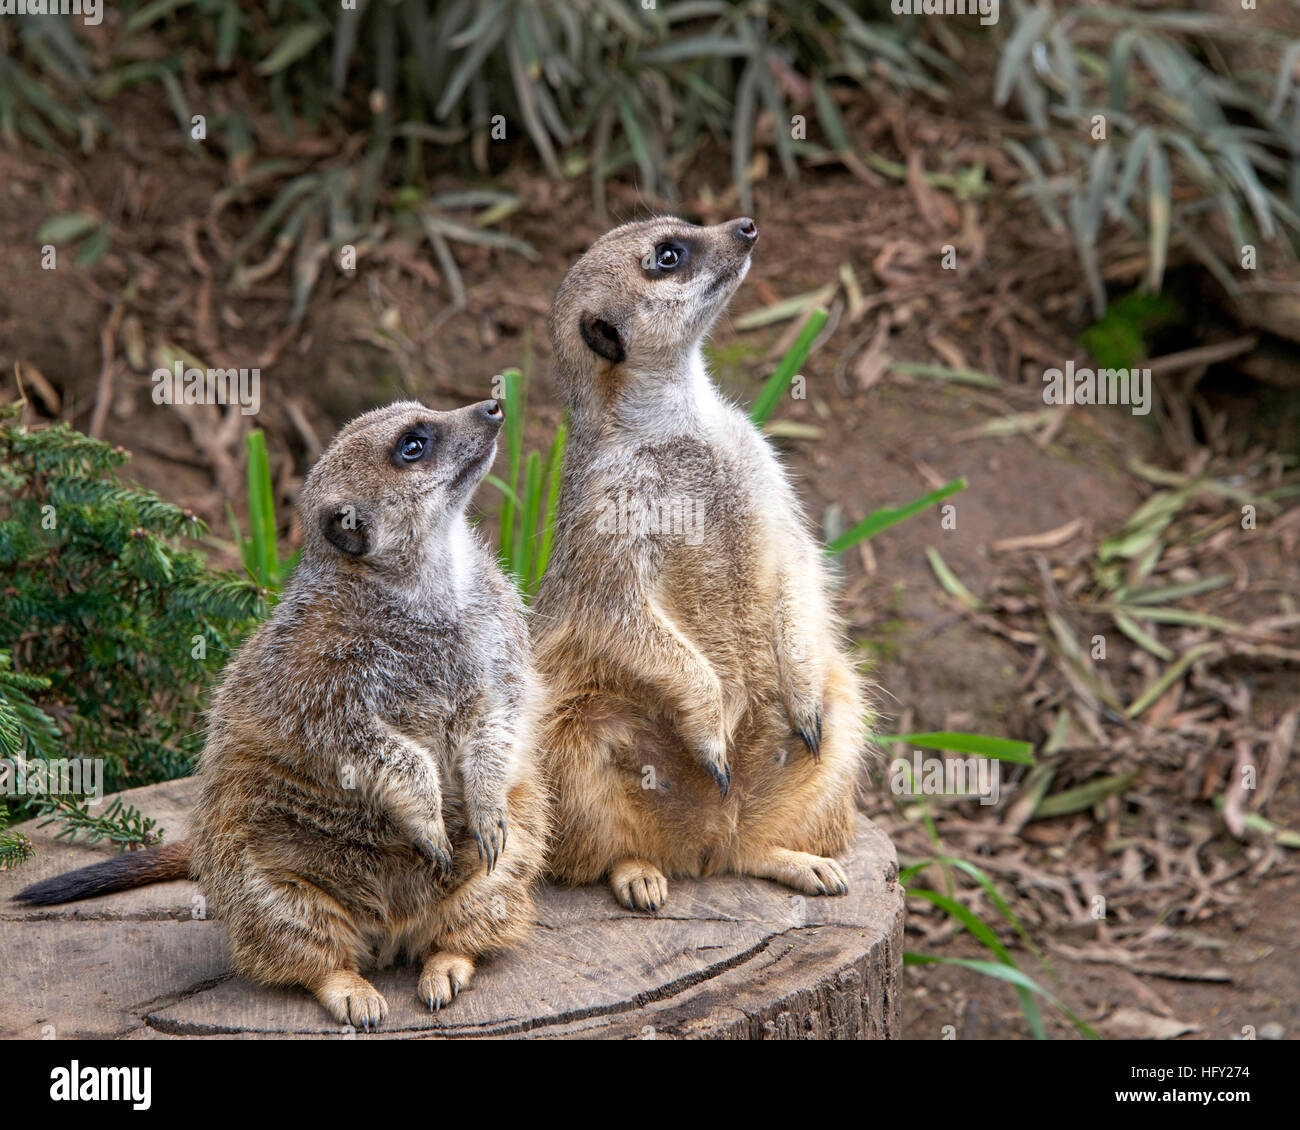 Two meerkats crouched to stand on a cut tree stump looking up to the right for predators. Green leaves in background. - Stock Image